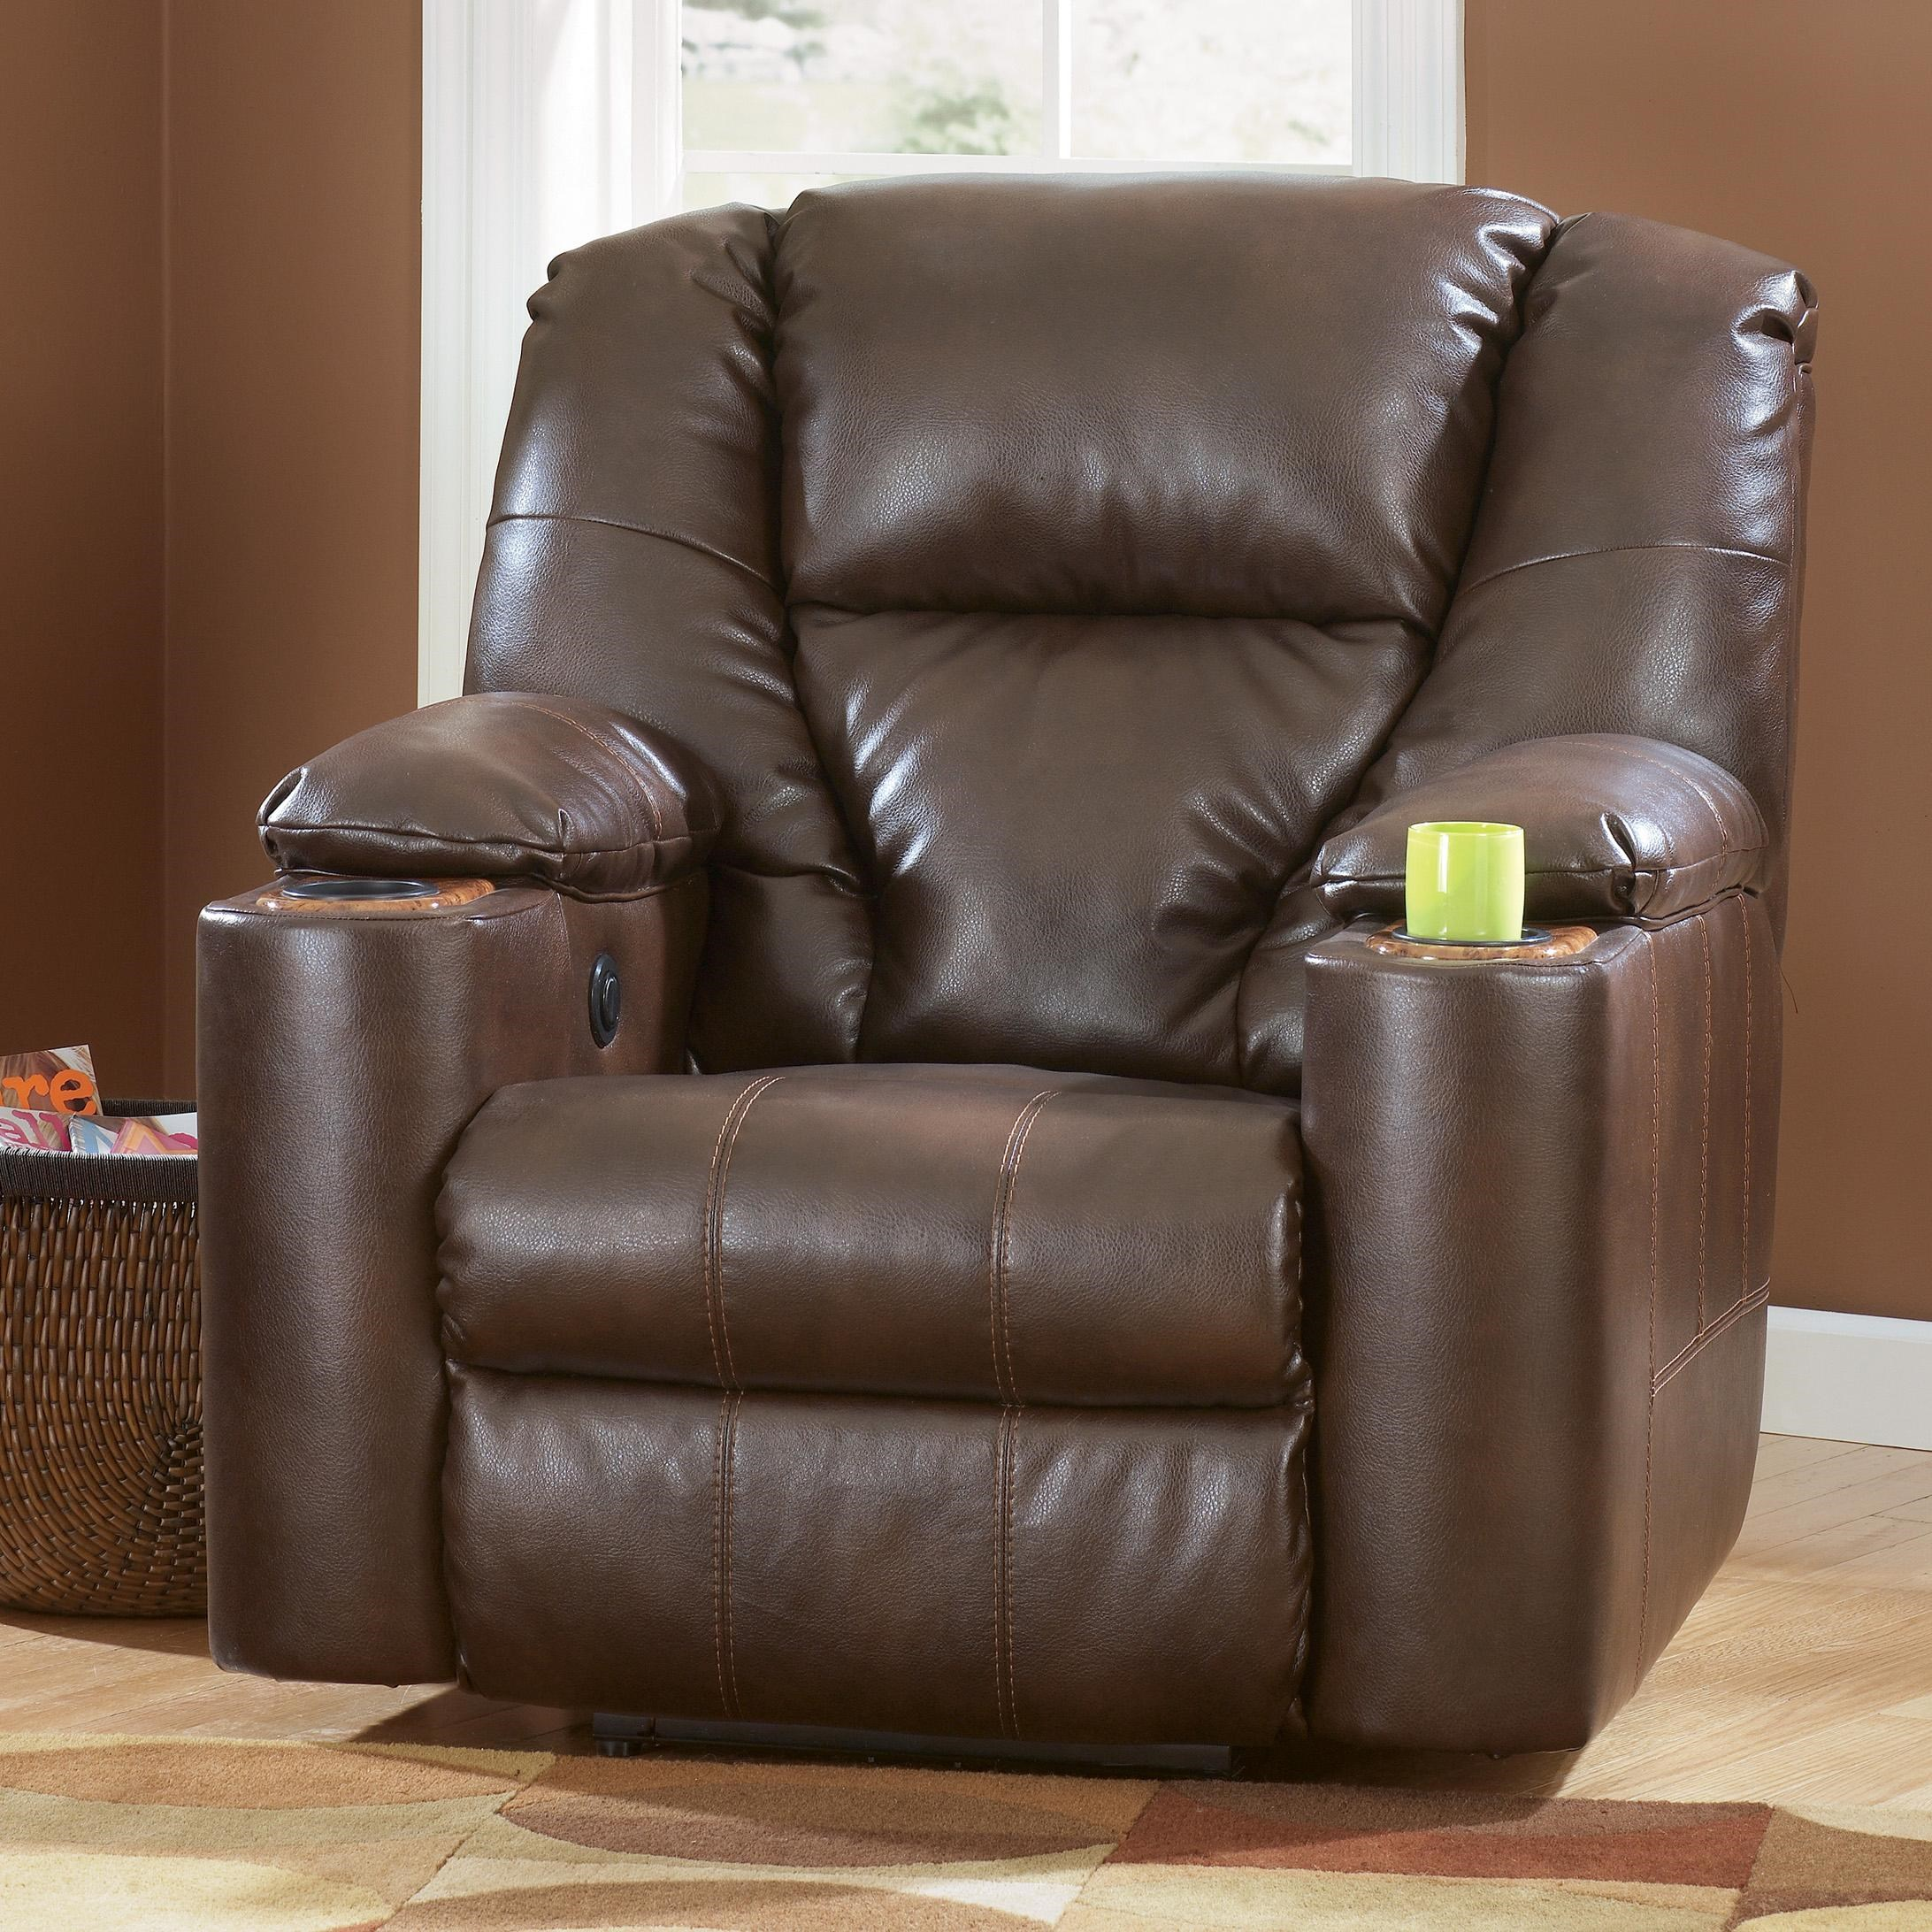 Ashley Recliner With Cup Holder